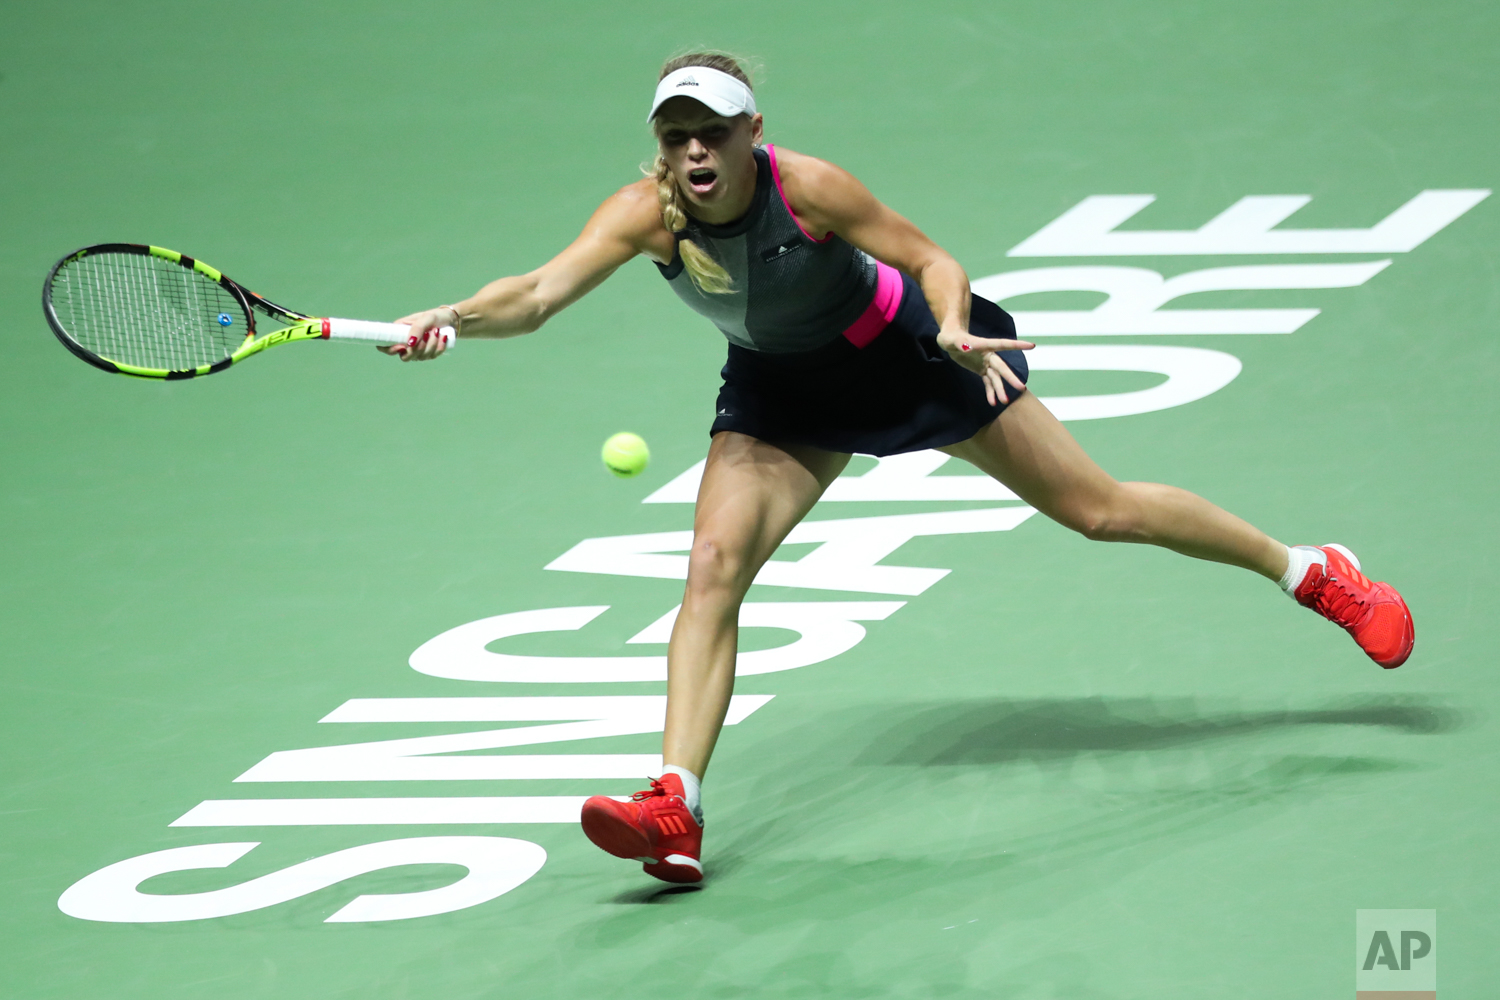 Caroline Wozniacki of Denmark makes a forehand return against Venus Williams of the United States during their singles final match at the WTA tennis tournament in Singapore, on Sunday, Oct. 29, 2017. (AP Photo/Yong Teck Lim)